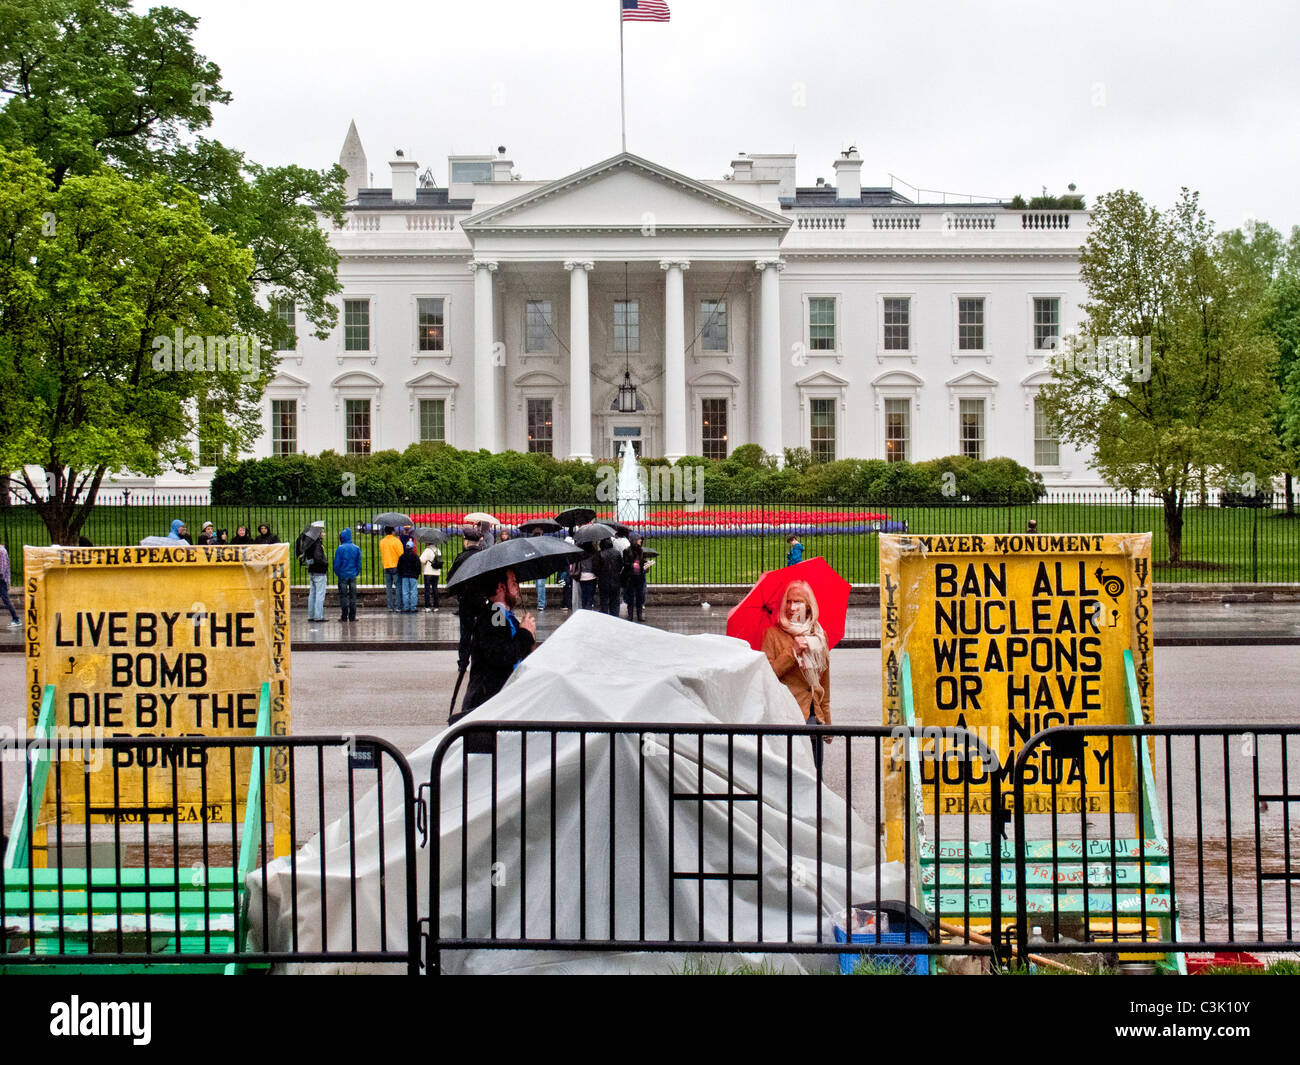 Wearing raincoats and carrying umbrellas, tourists gather outside the White House in Washington, D.C. Note anti - Stock Image